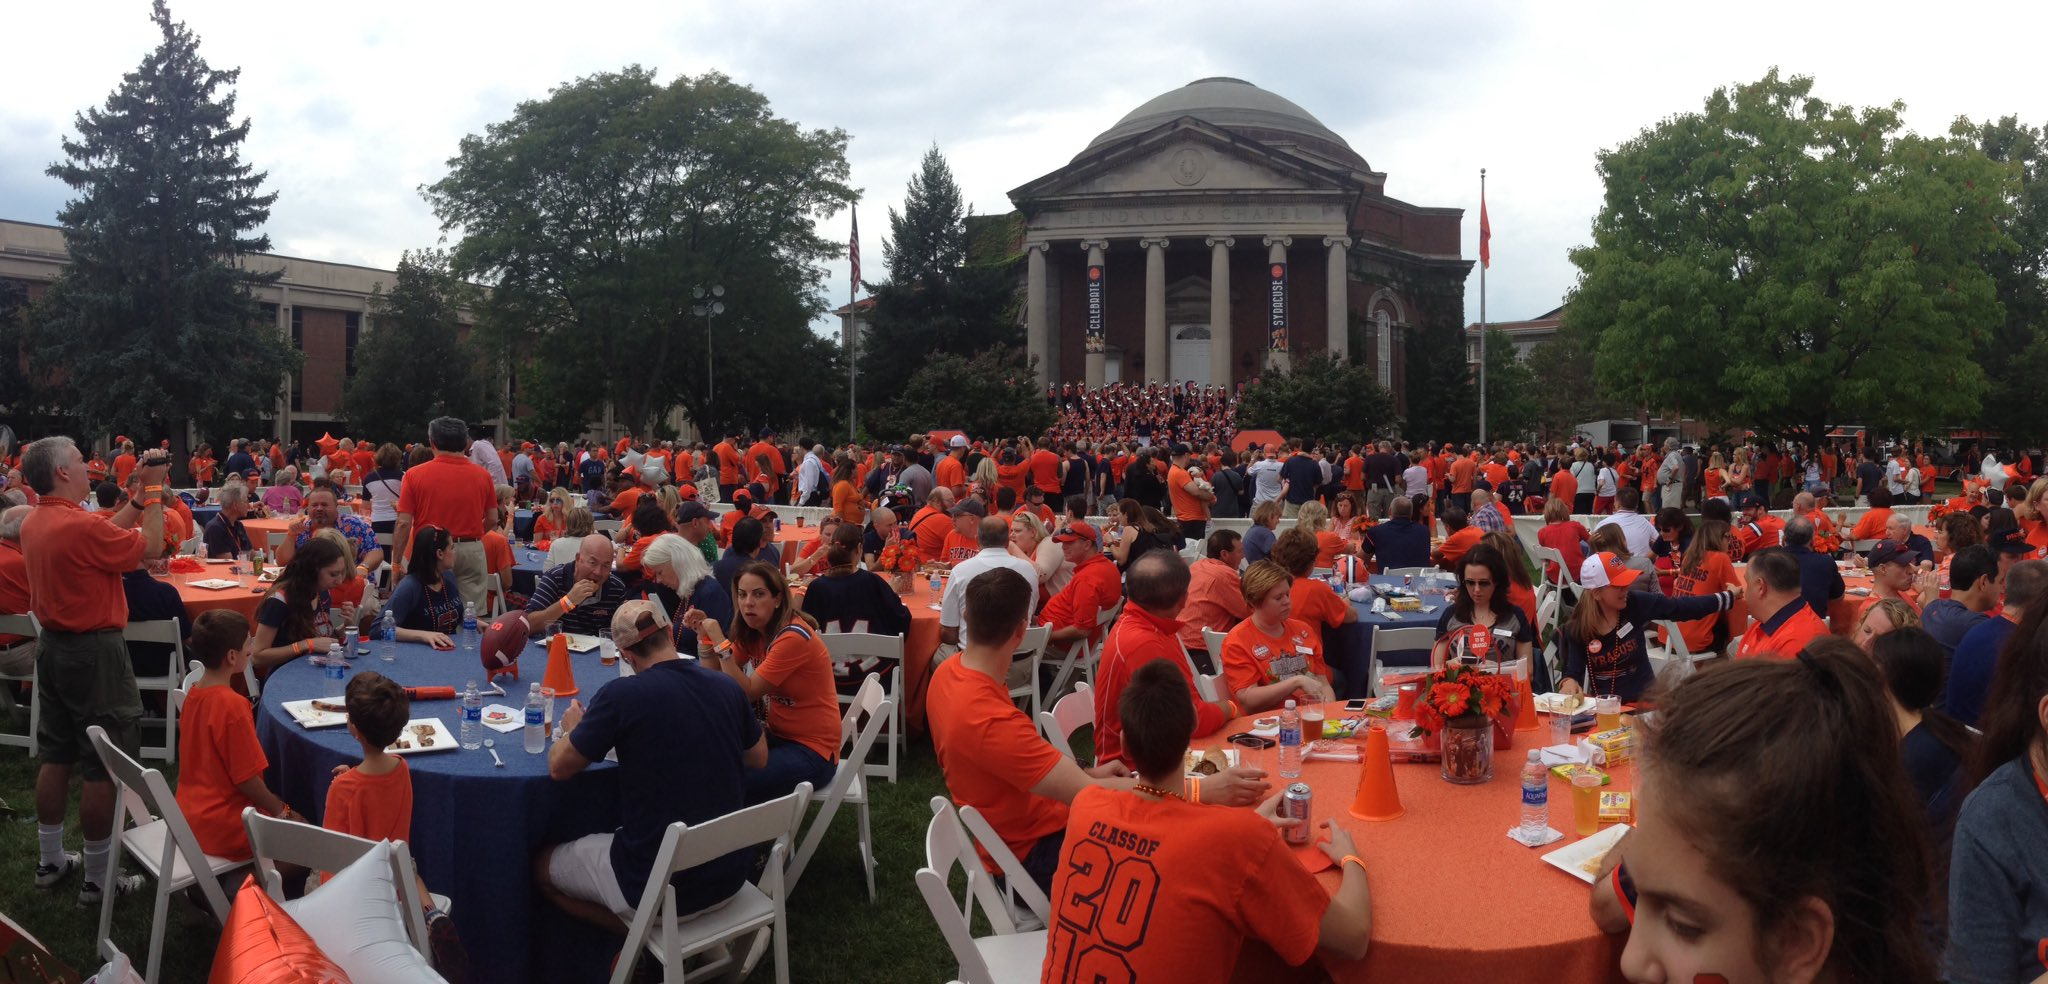 What a great scene on the quad today. #OrangeCentral @SUAlums @SyracuseU https://t.co/mEMkPnOia7